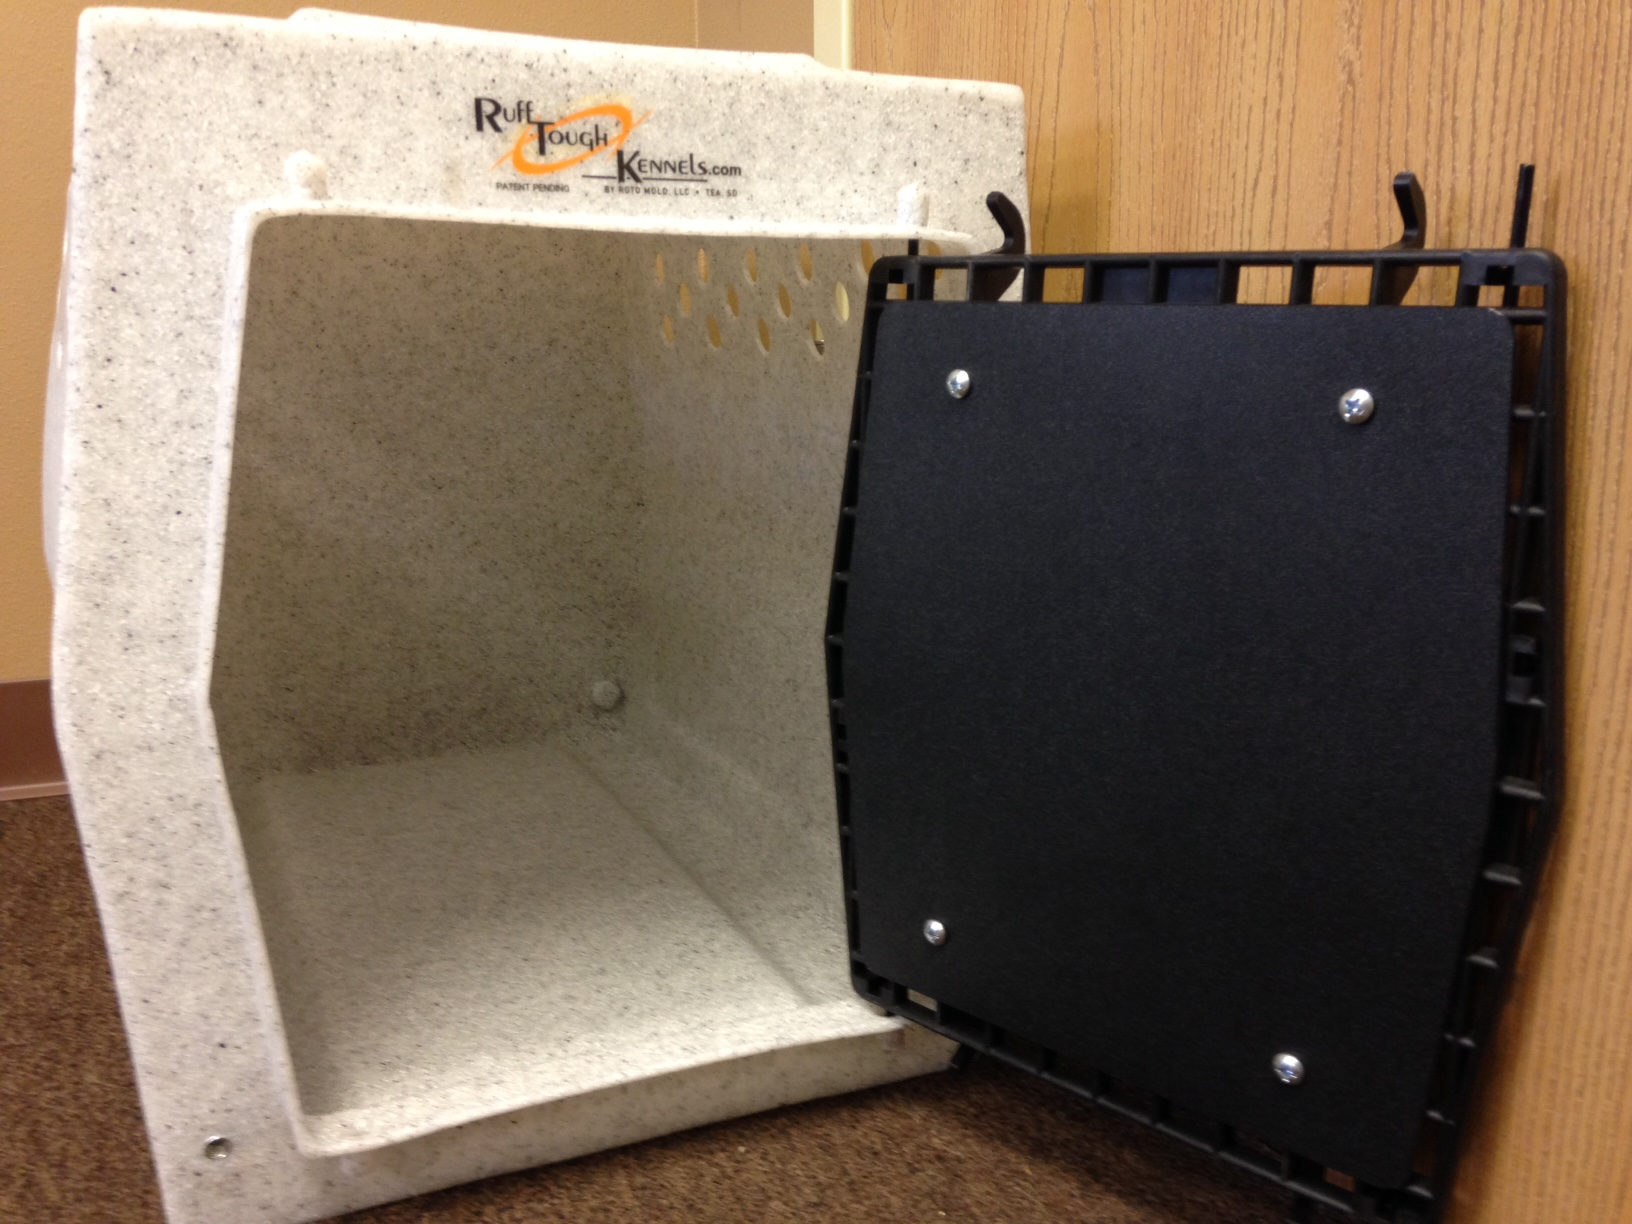 Door Covers For Ruff Tough Dog Kennels